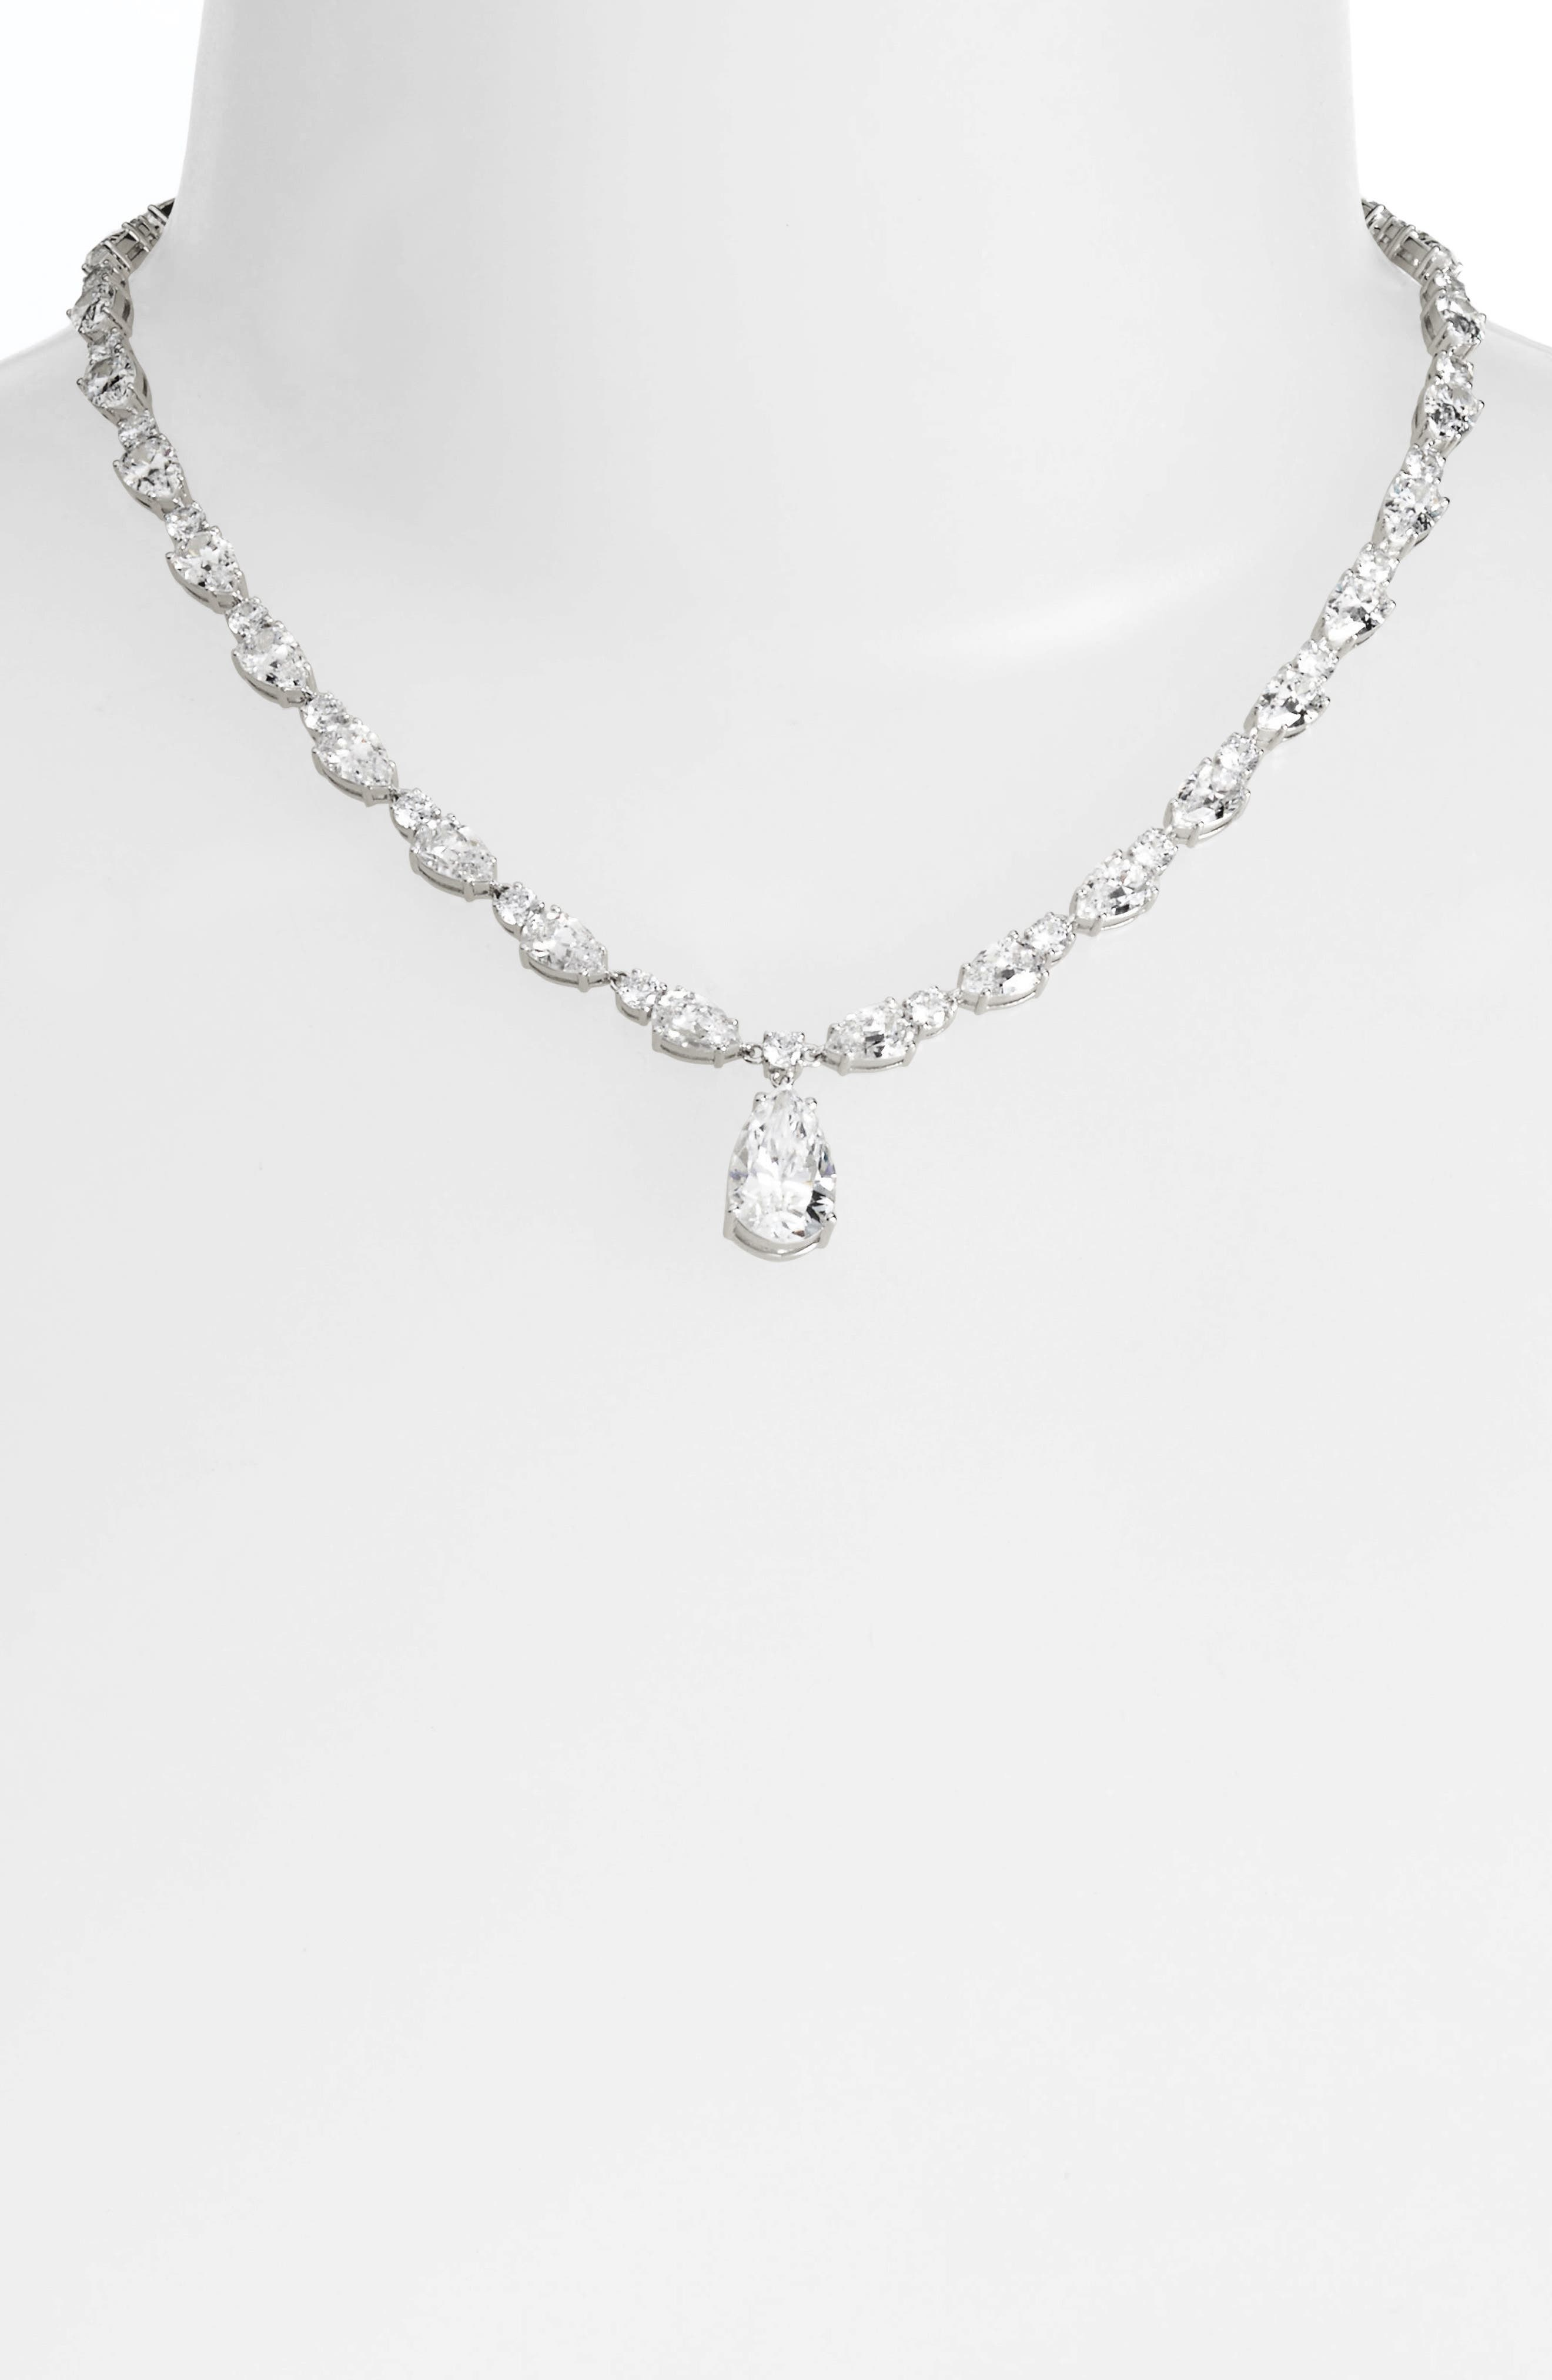 All Around Cubic Zirconia Pendant Necklace,                             Alternate thumbnail 2, color,                             SILVER